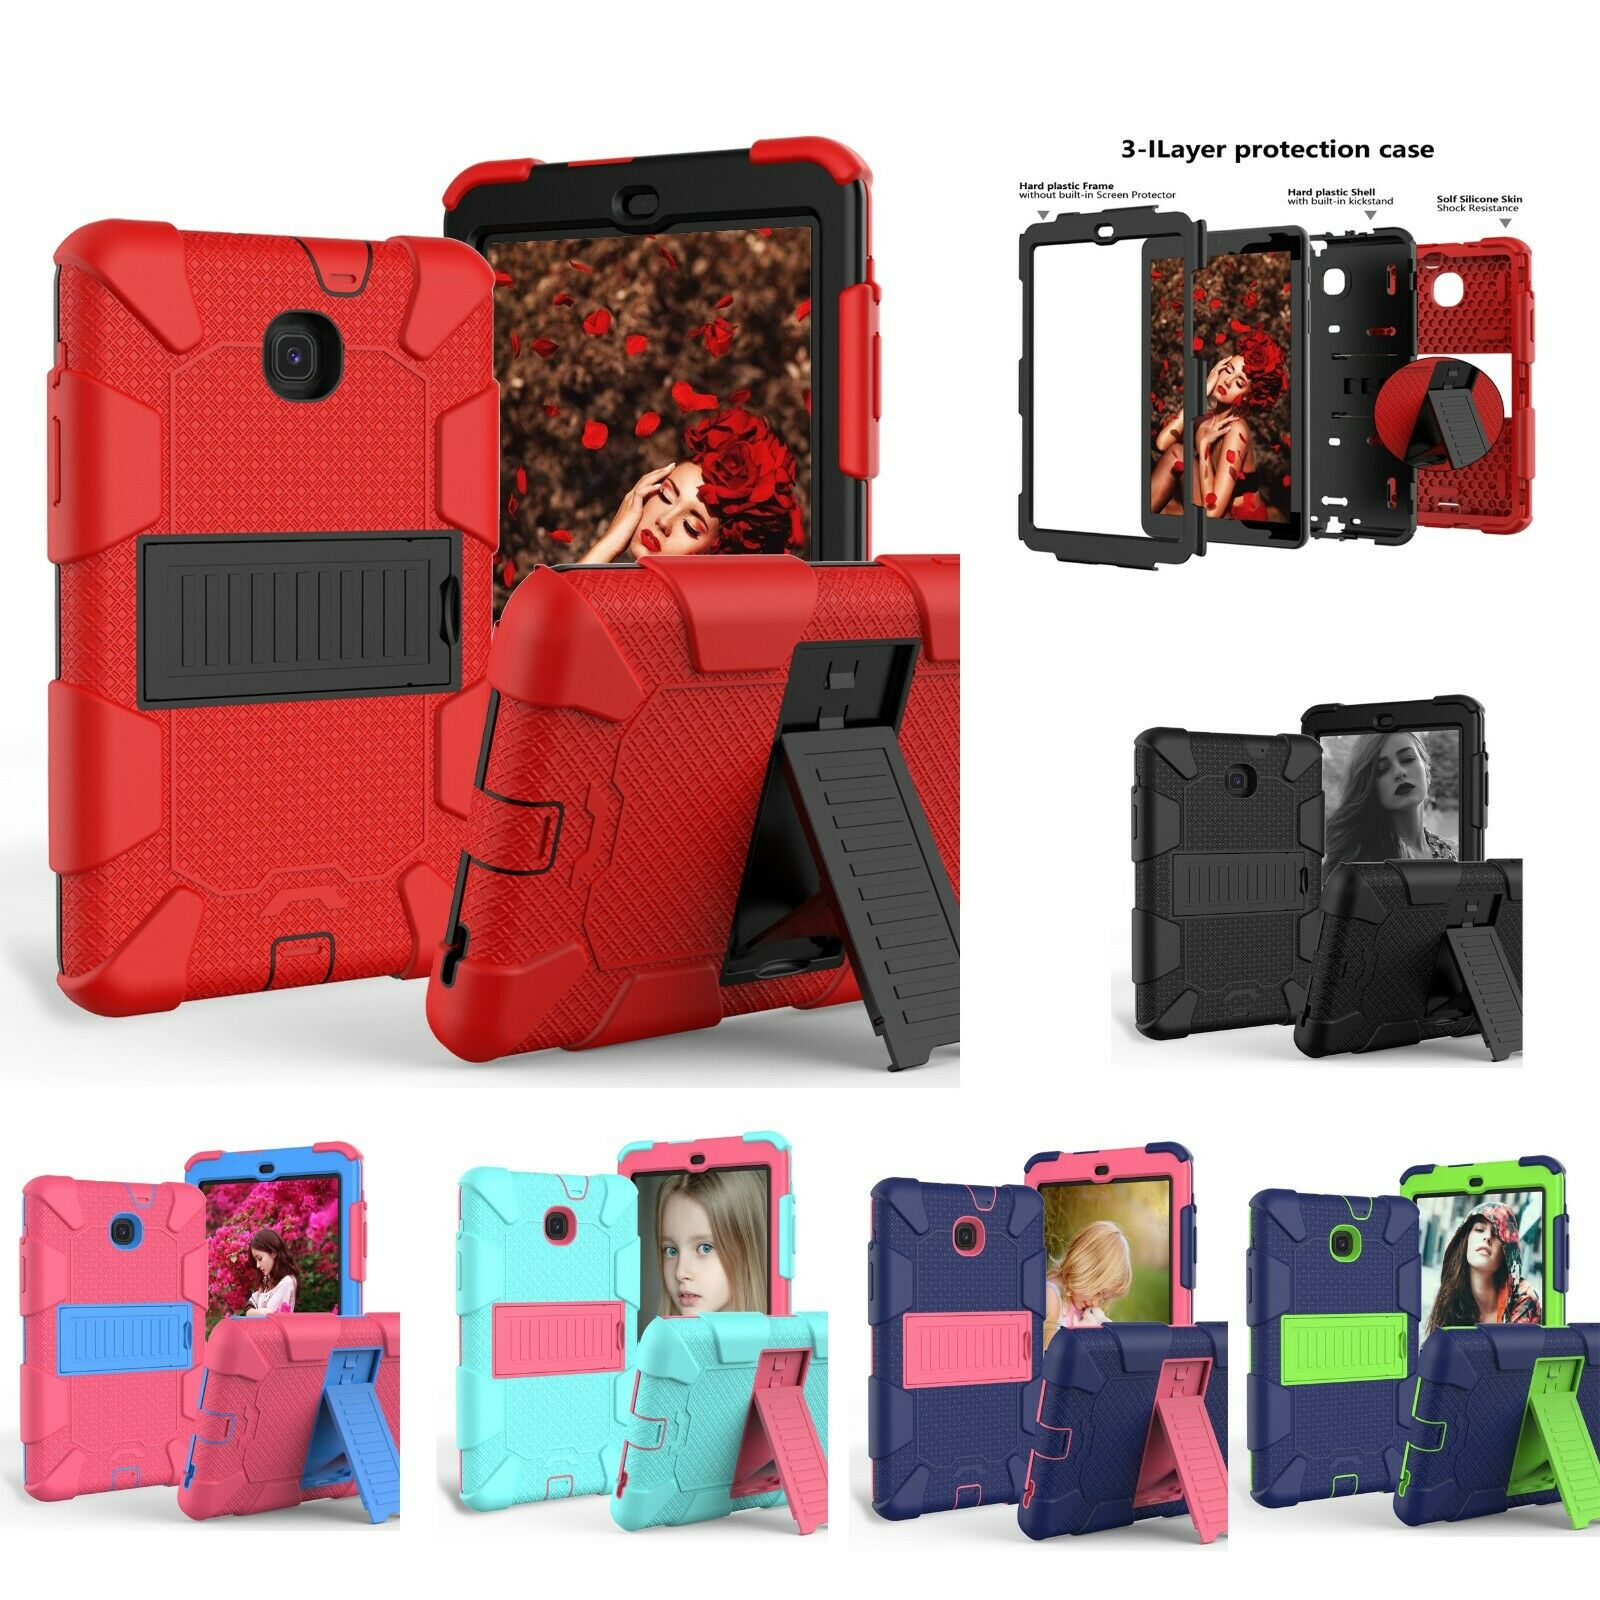 For Samsung Galaxy Tab A 8.0 2018 SM-T387 Hybrid Shockproof Impact Case Cover Cases, Covers, Keyboard Folios